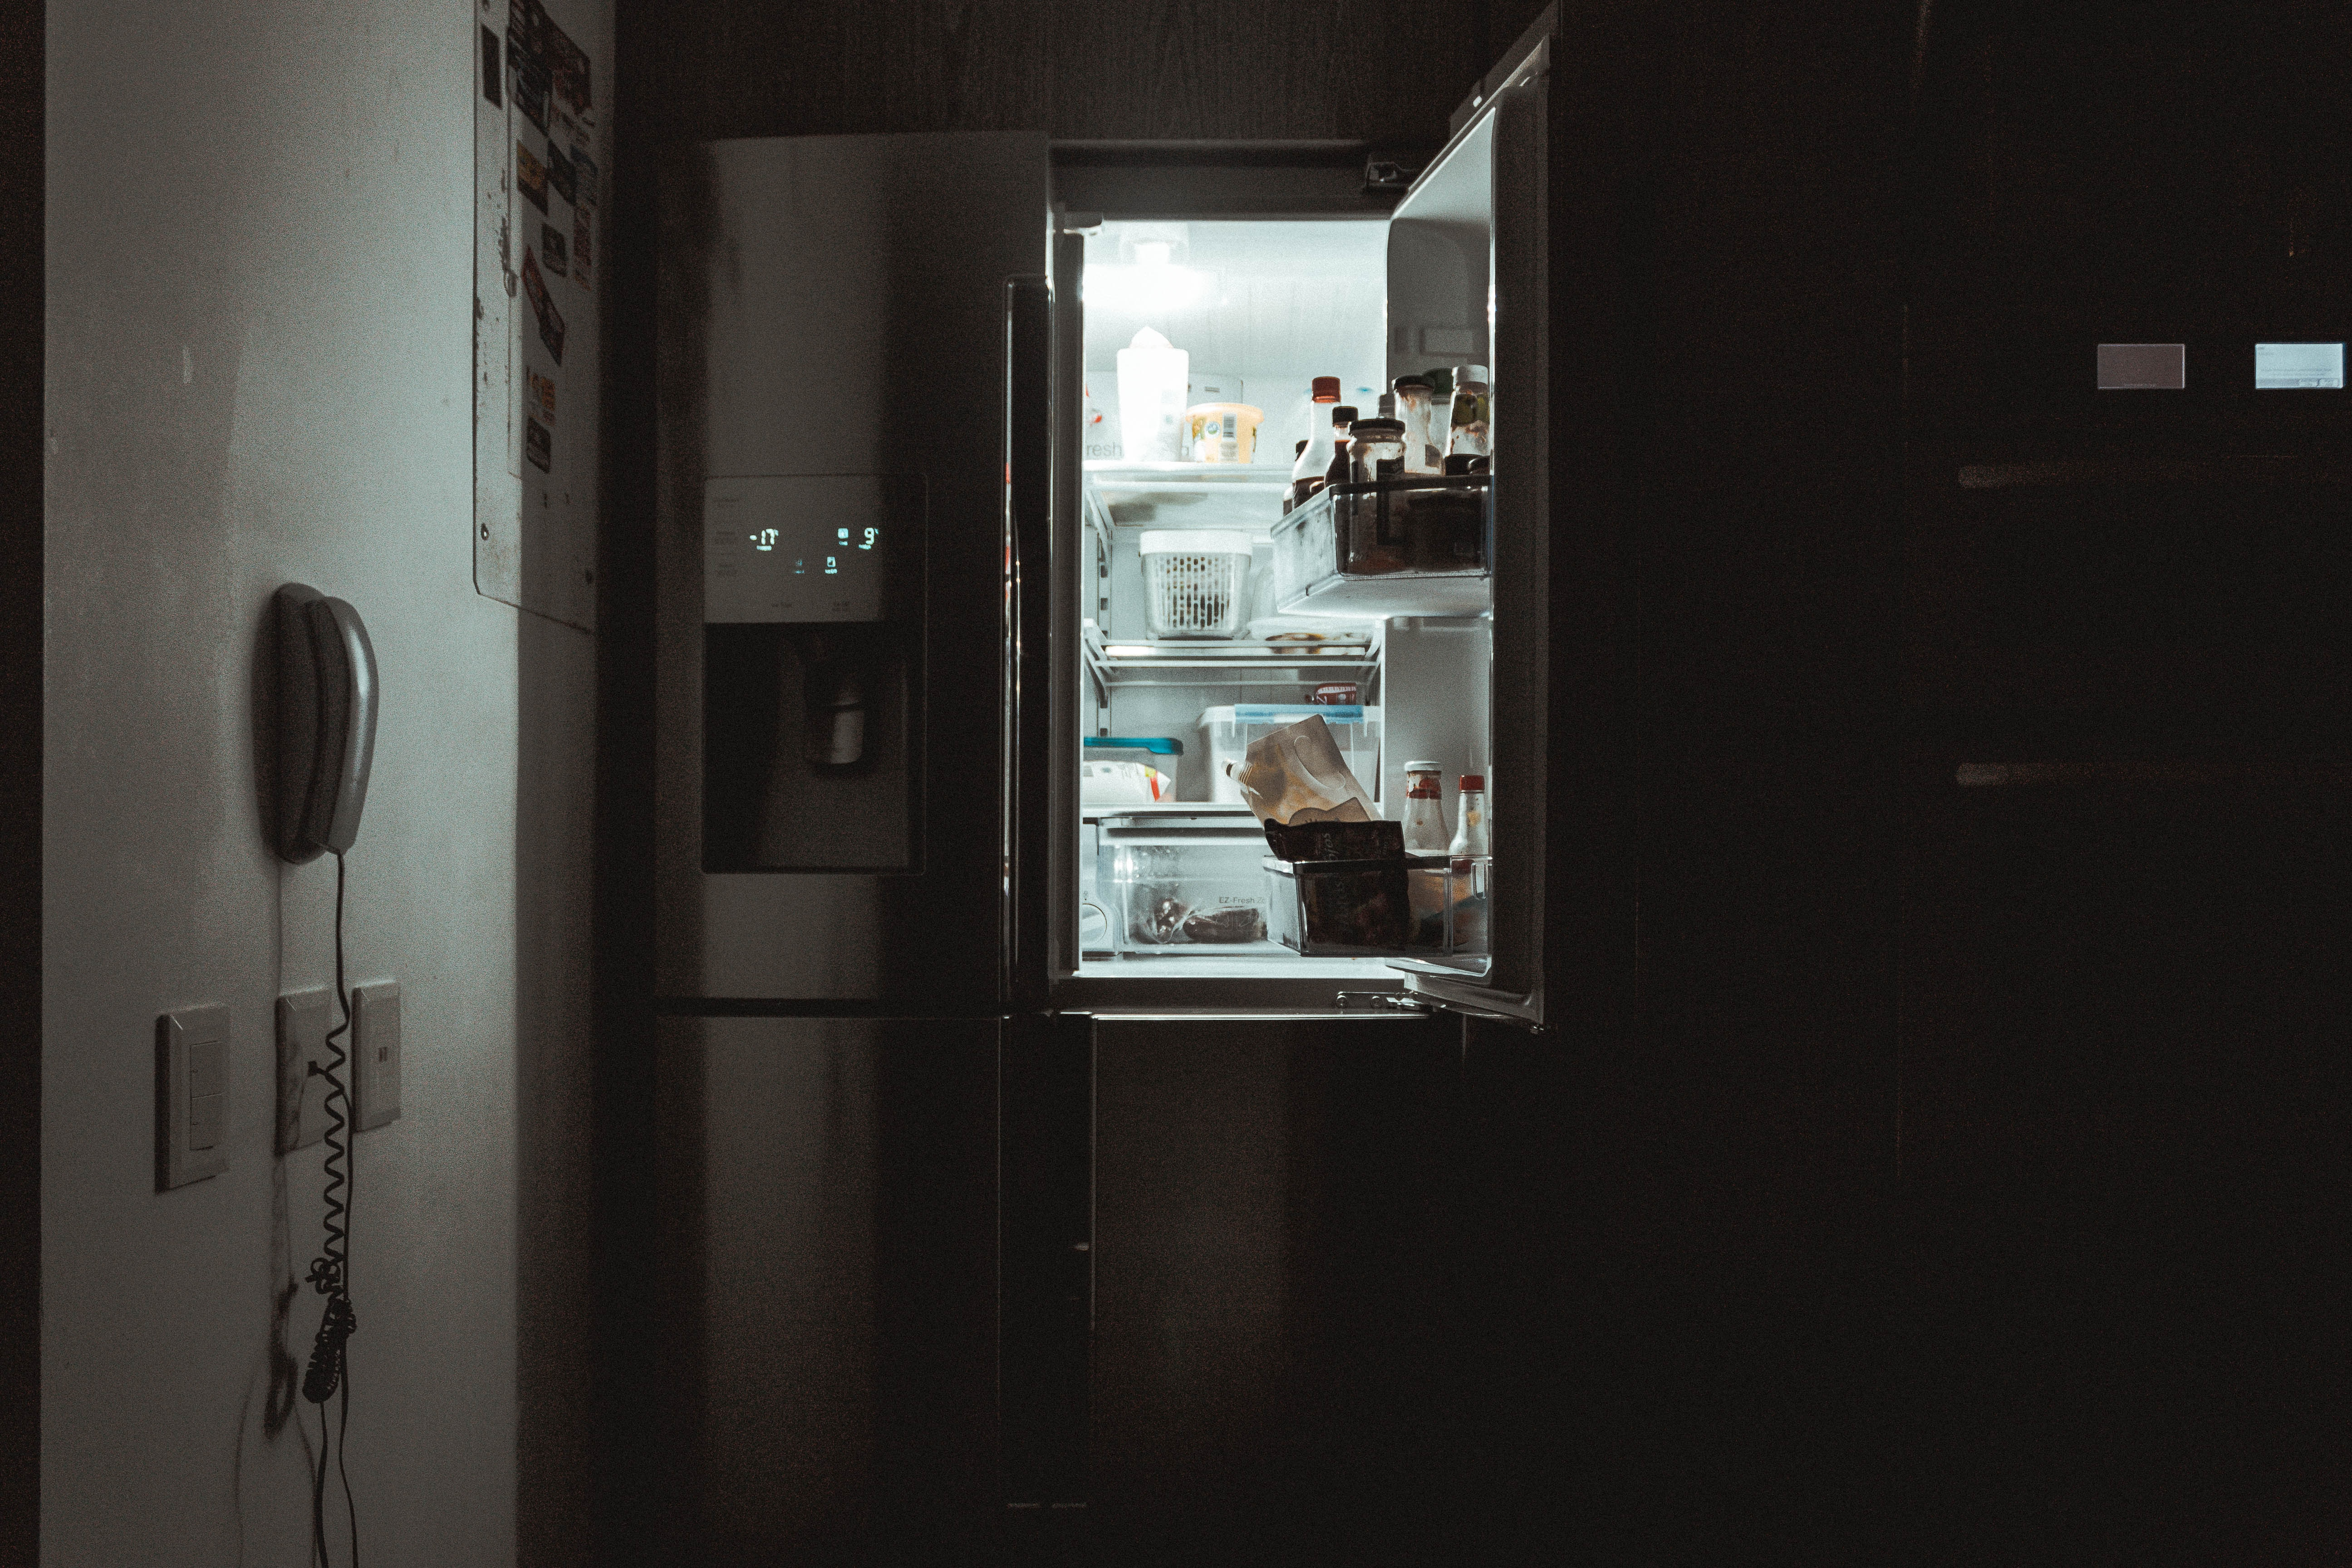 Disposing Of Your Old Fridge Safely